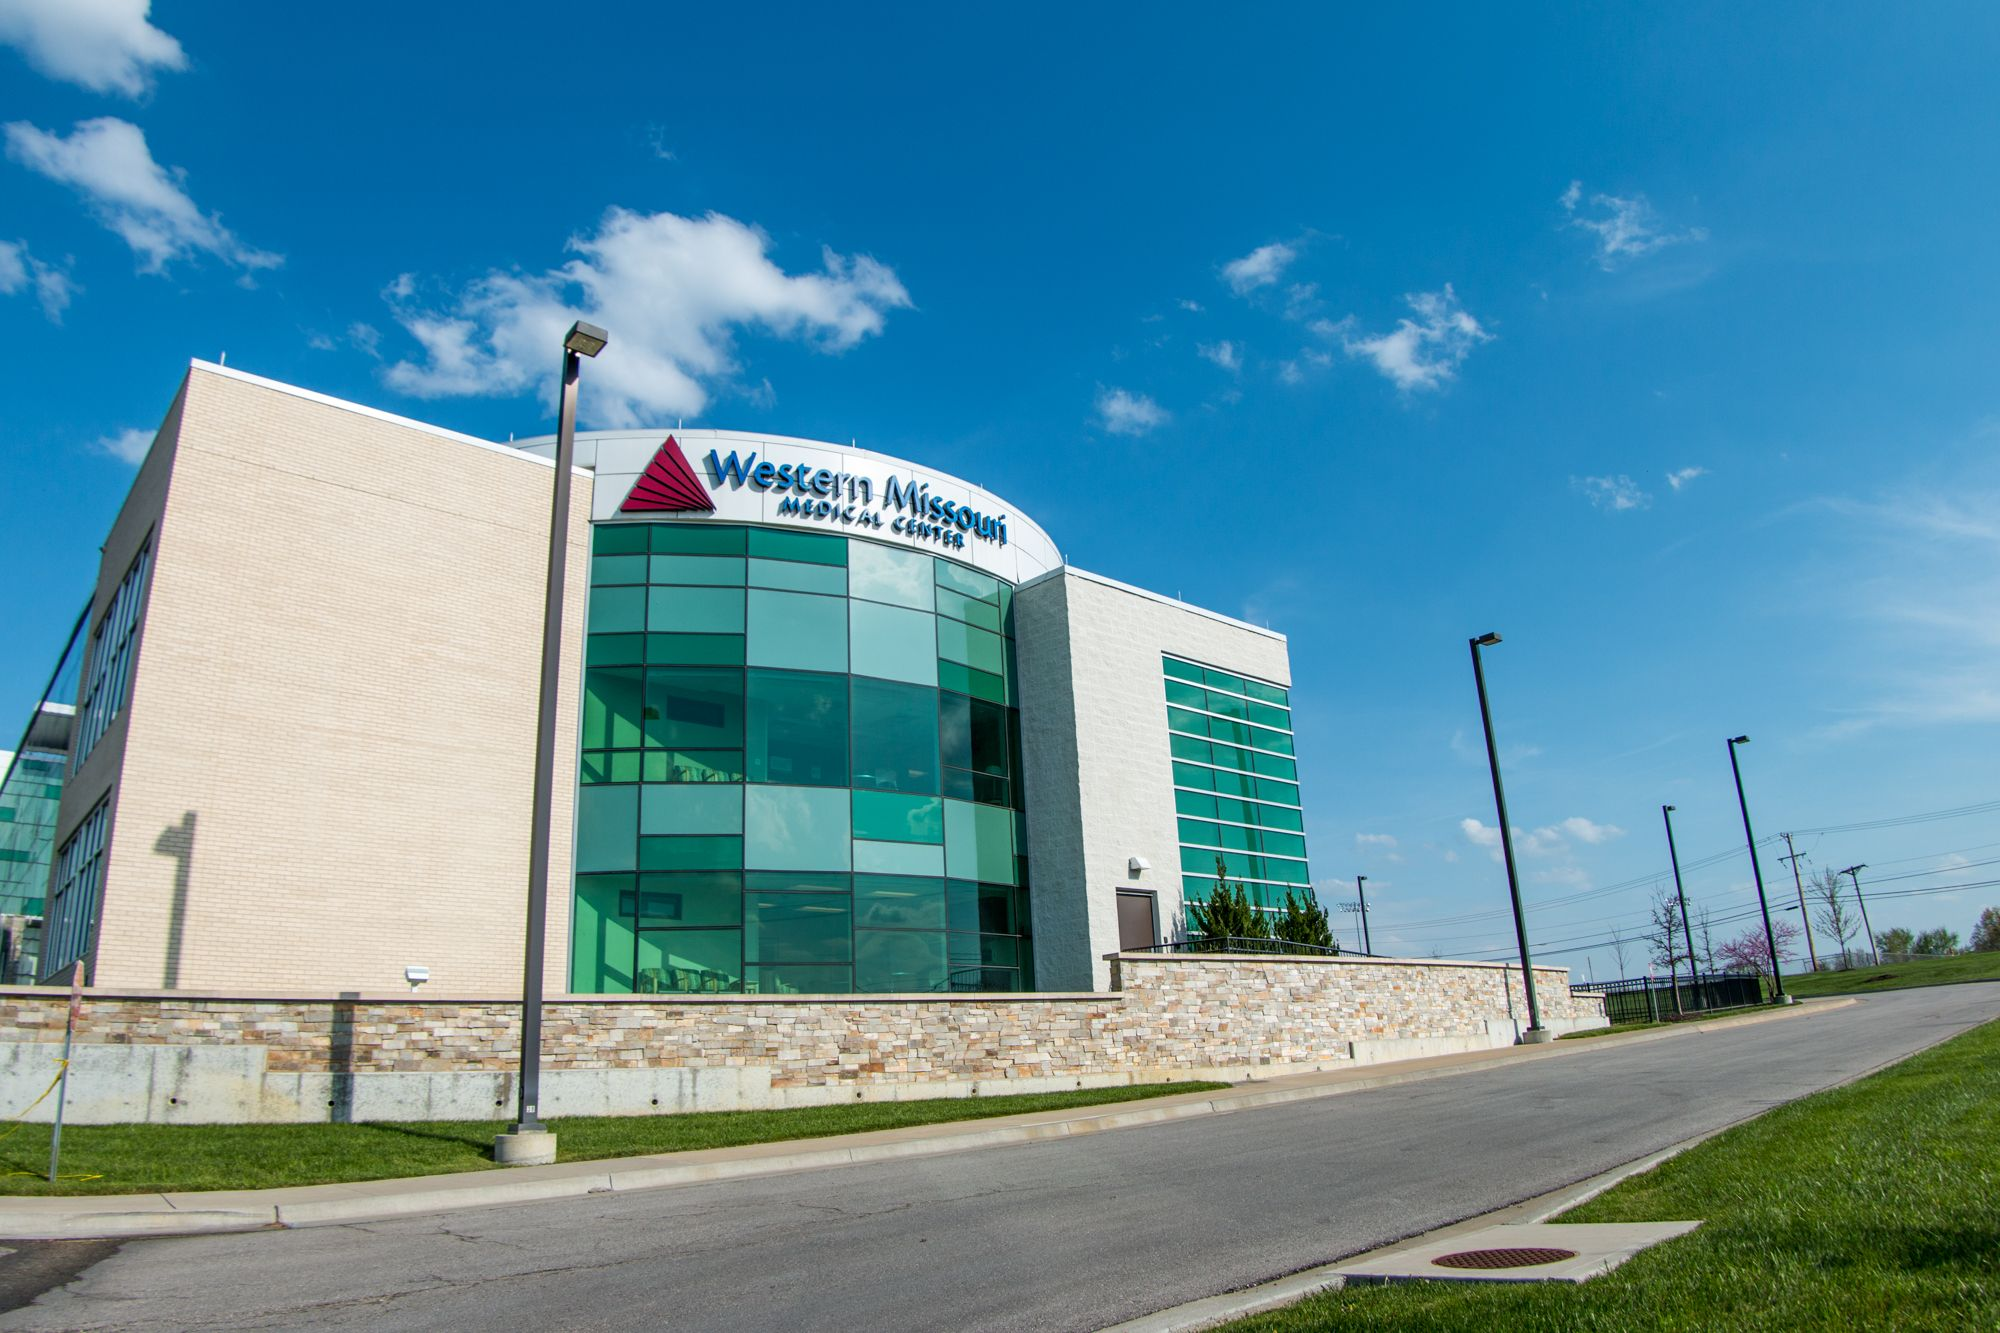 Wmmc Armed Intruder Protocol Activated Warrensburg Mo Warrensburg Medical Center Police Department